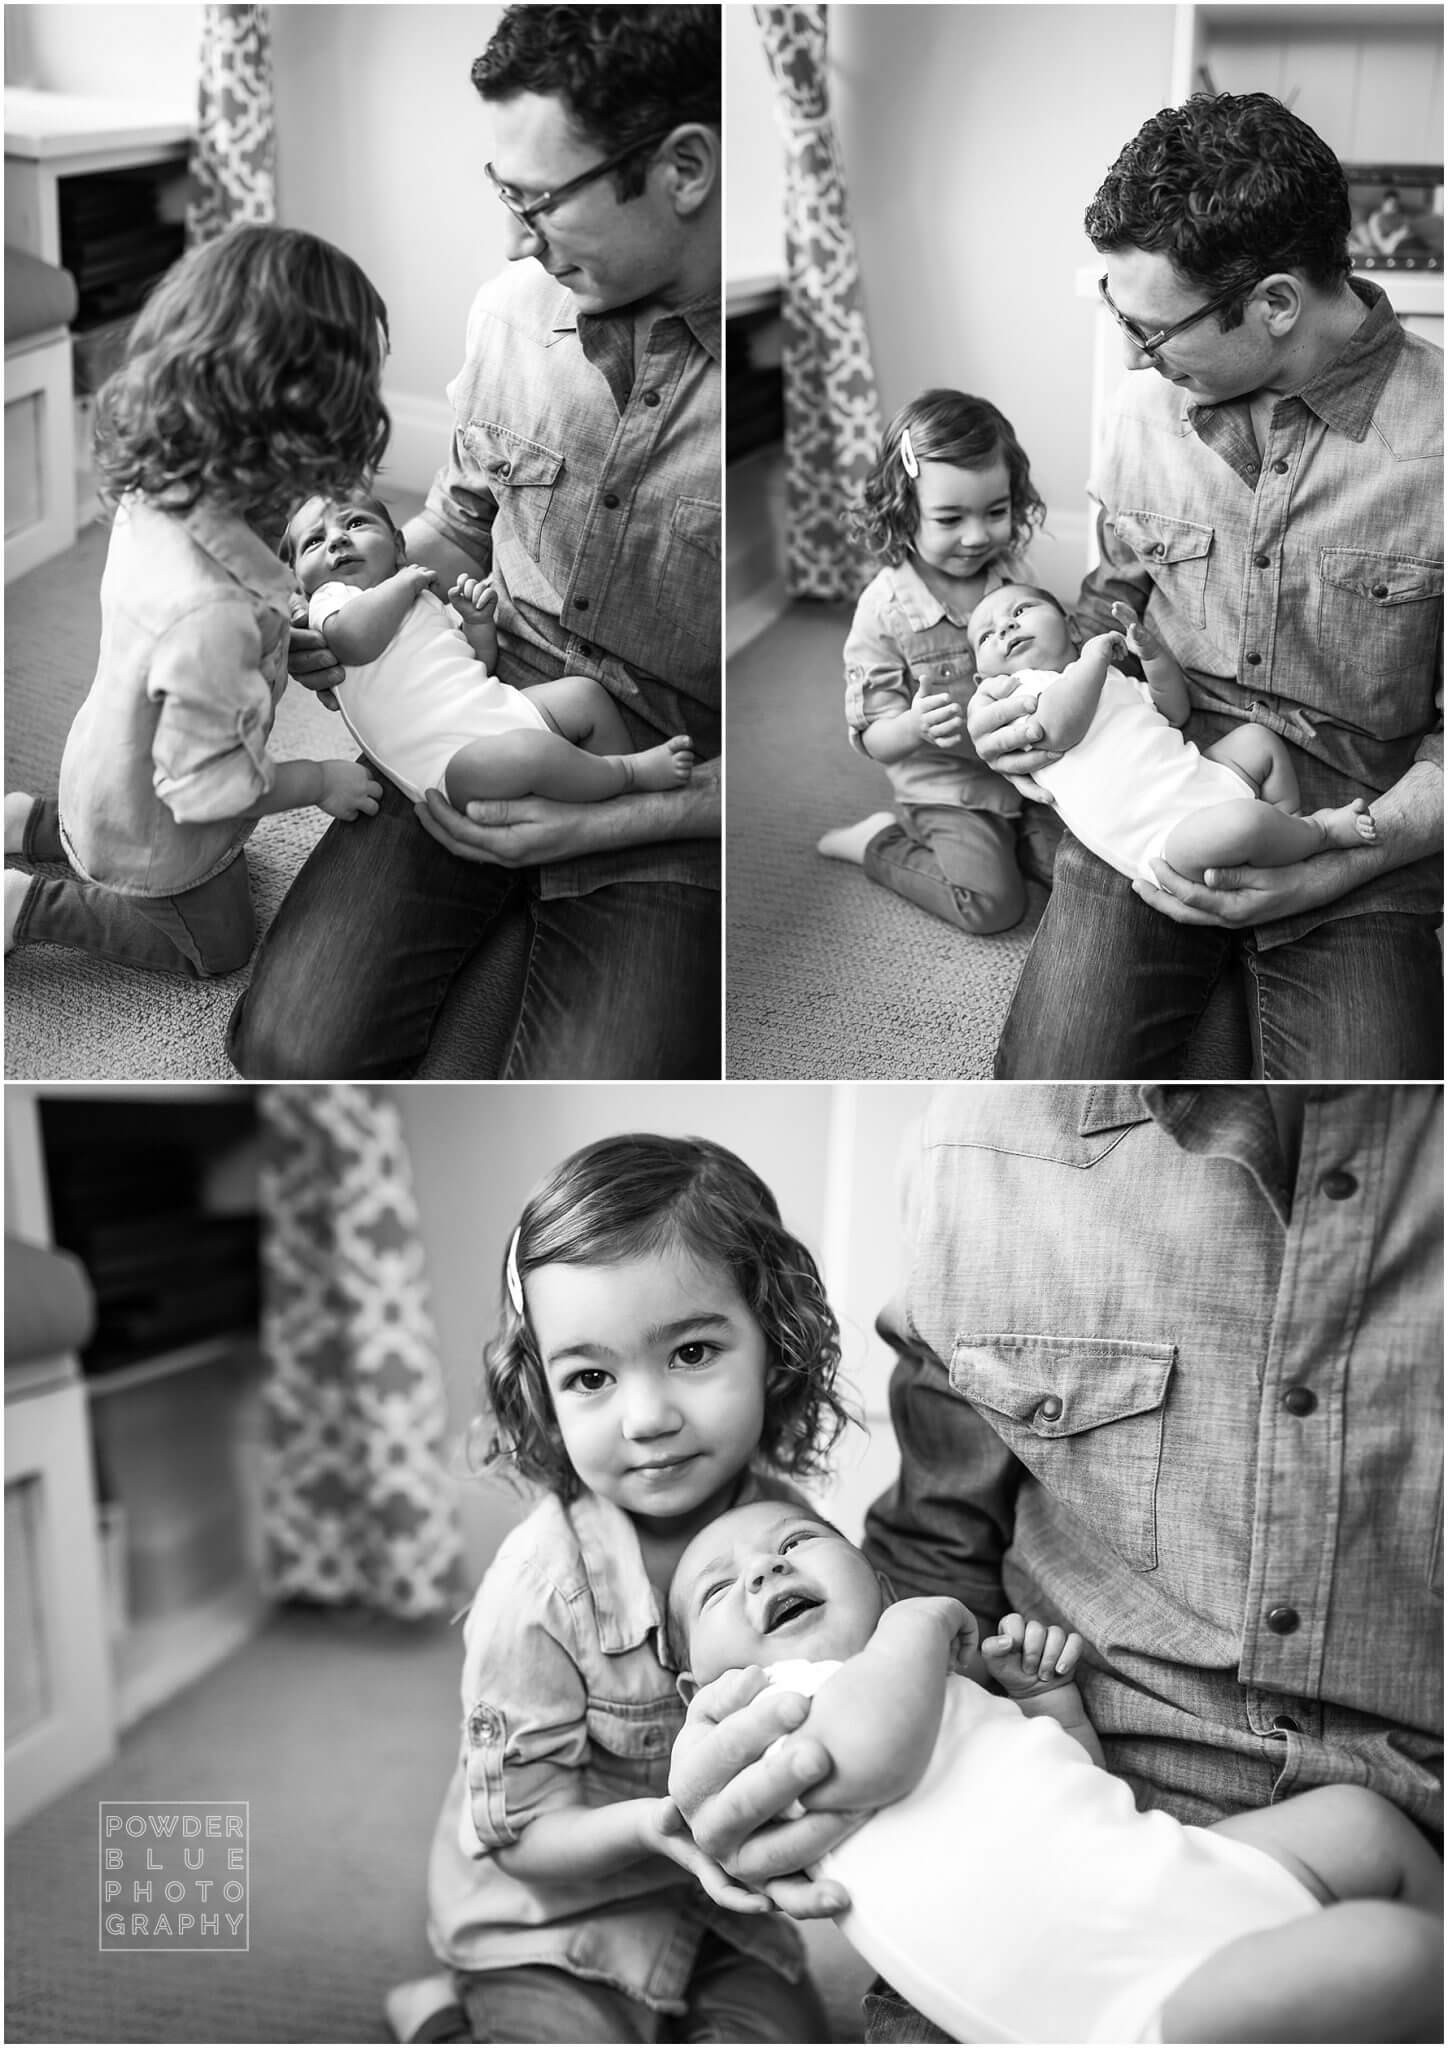 black and white lifestyle newborn session images of newborn baby boy with two year old sister. in home lifestyle newborn session at shady side home in pittsburgh. in home lifestyle session using canon 600 ex-rt speedlites.